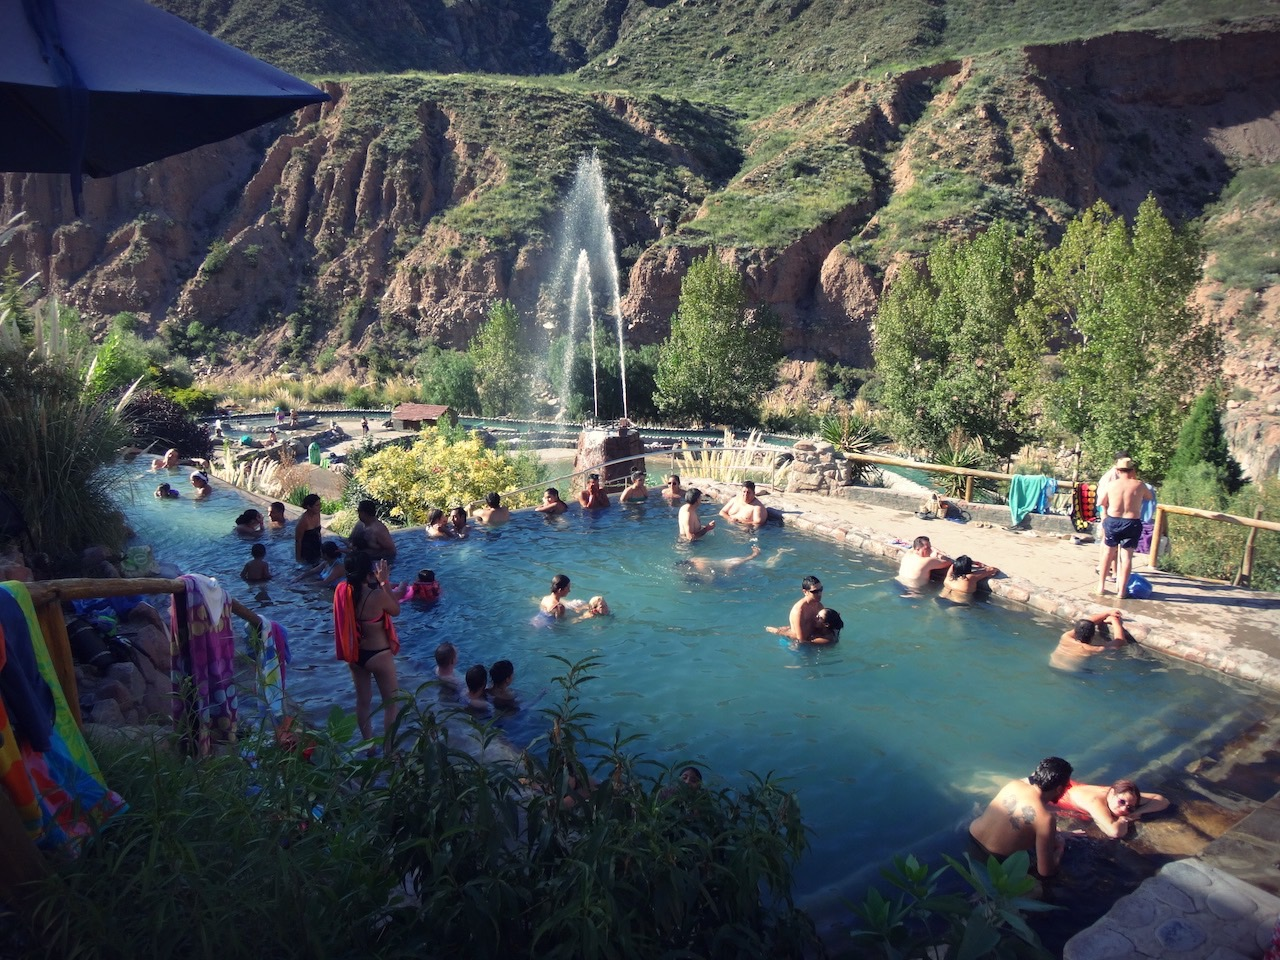 Hot Springs at Mendoza